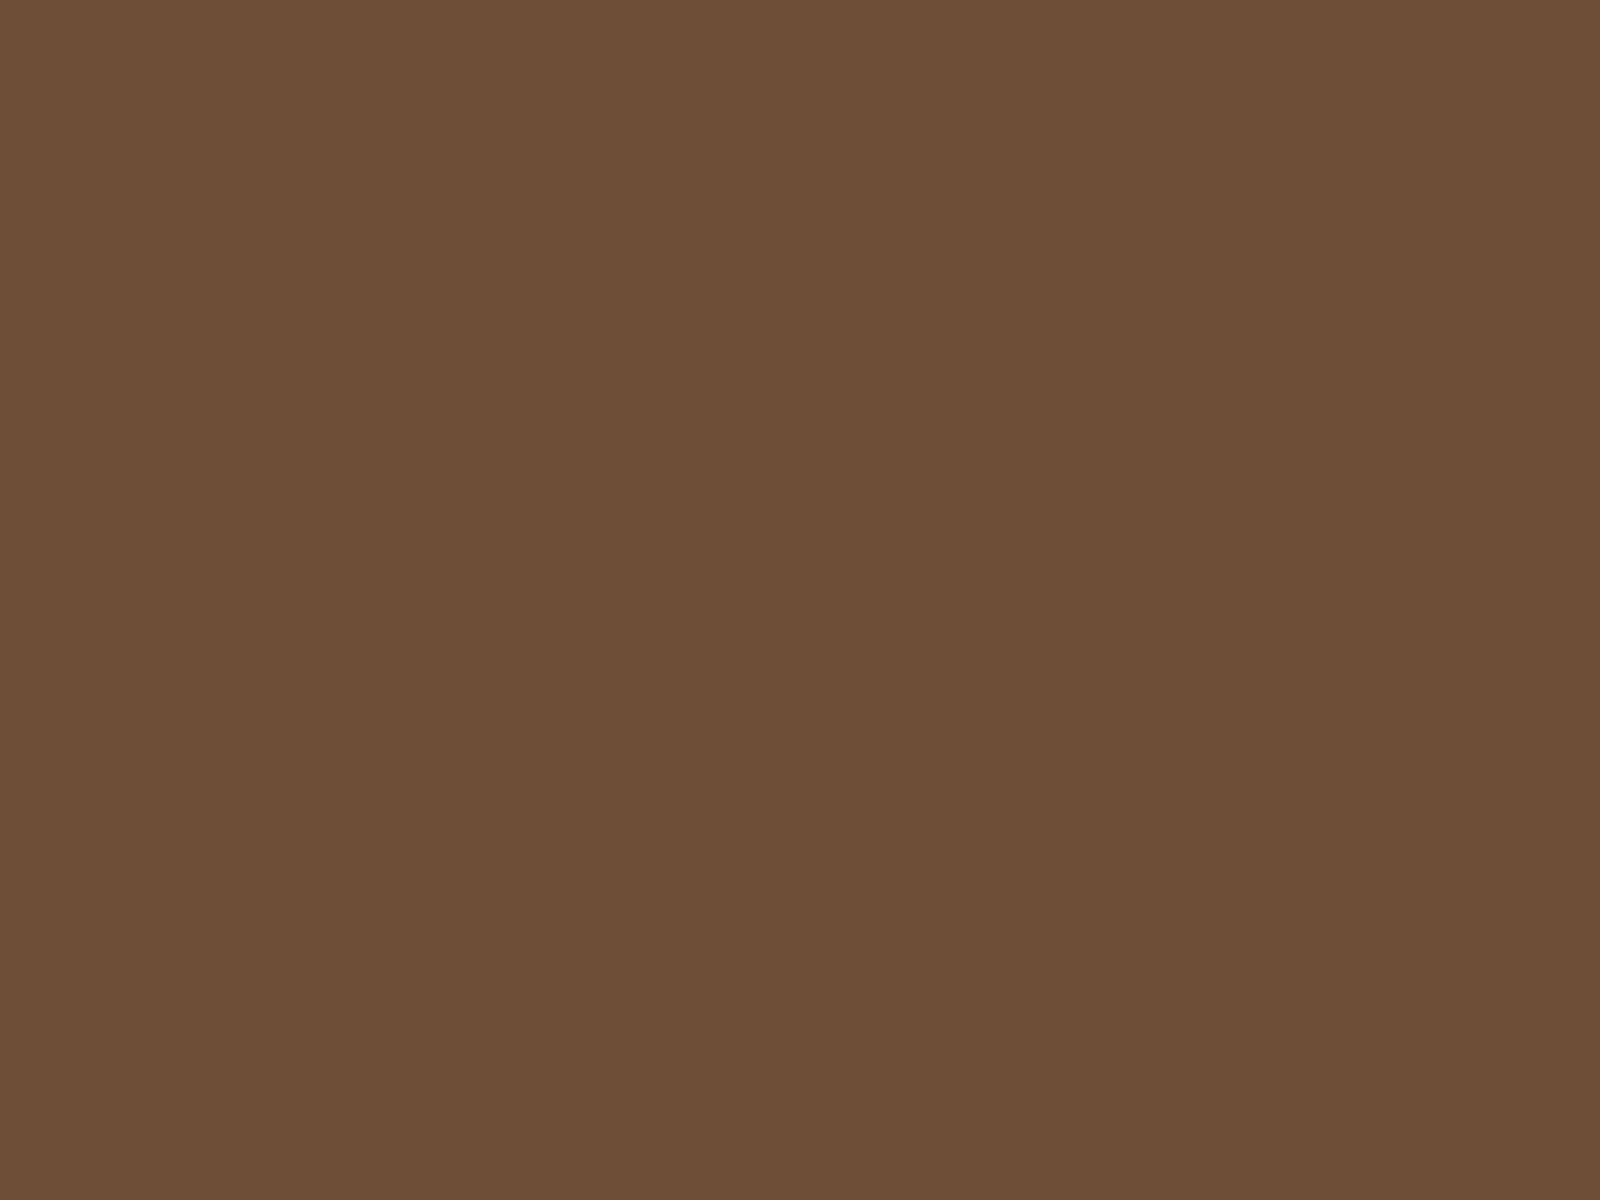 1600x1200 Tuscan Brown Solid Color Background